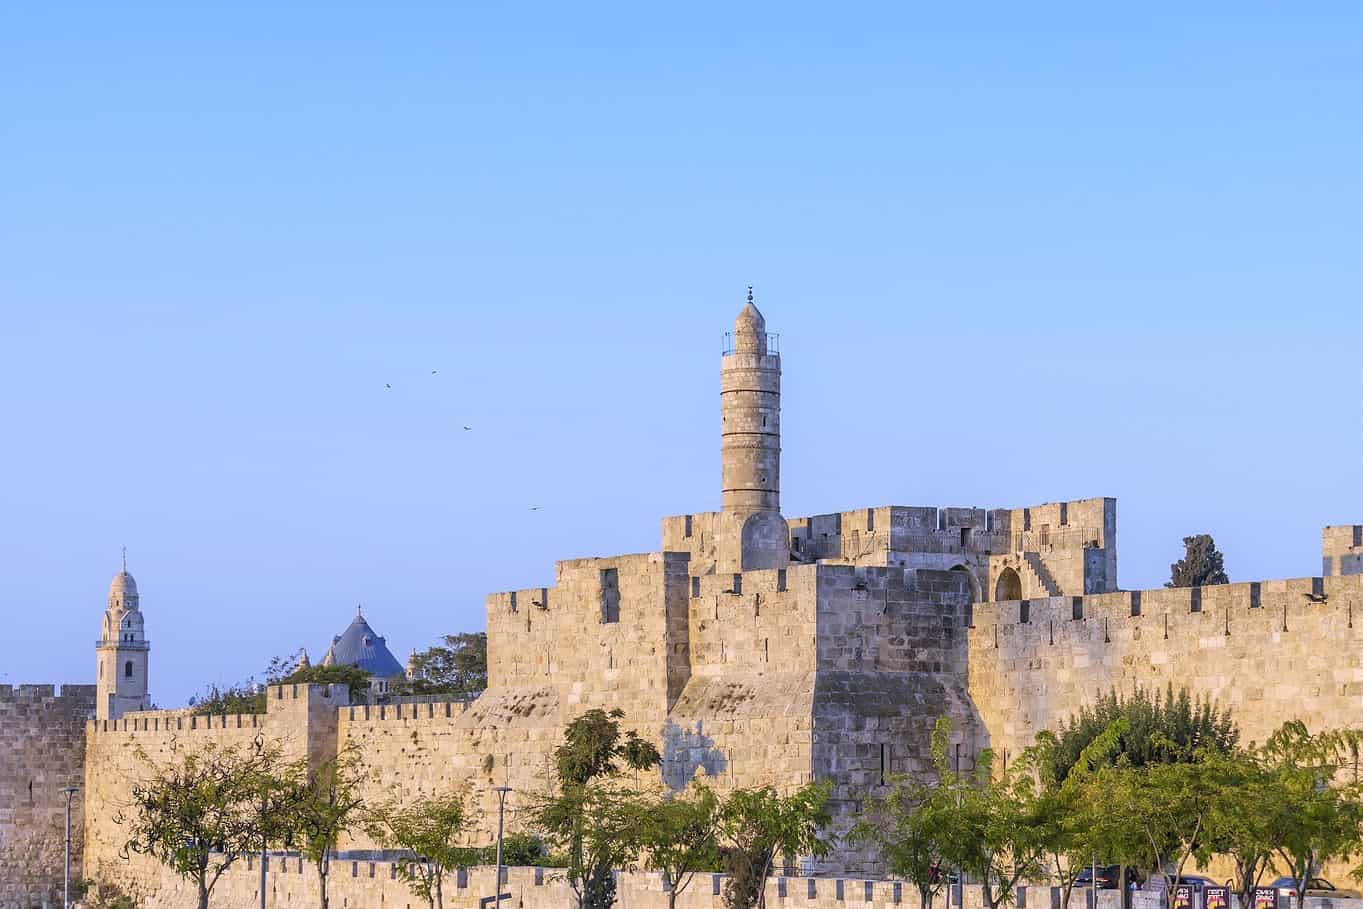 The Tower of David and the walls of the old city of Jerusalem